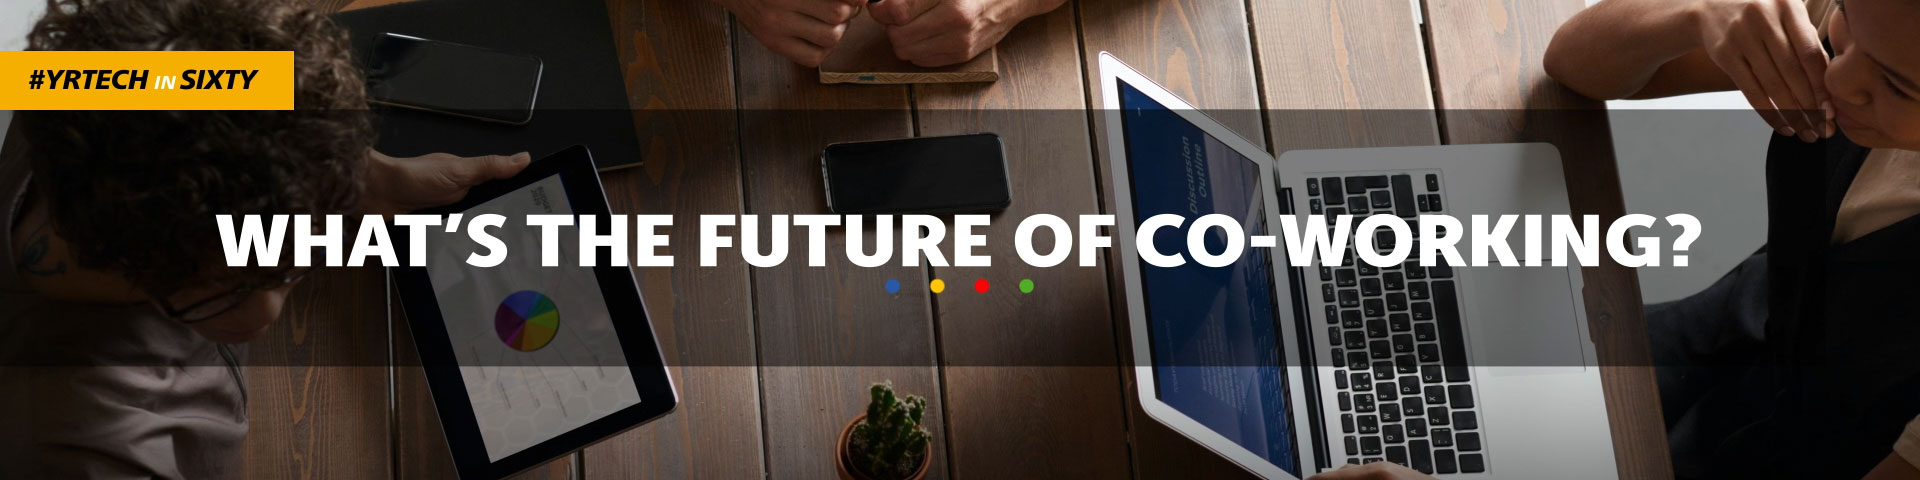 What's the future of coworking?